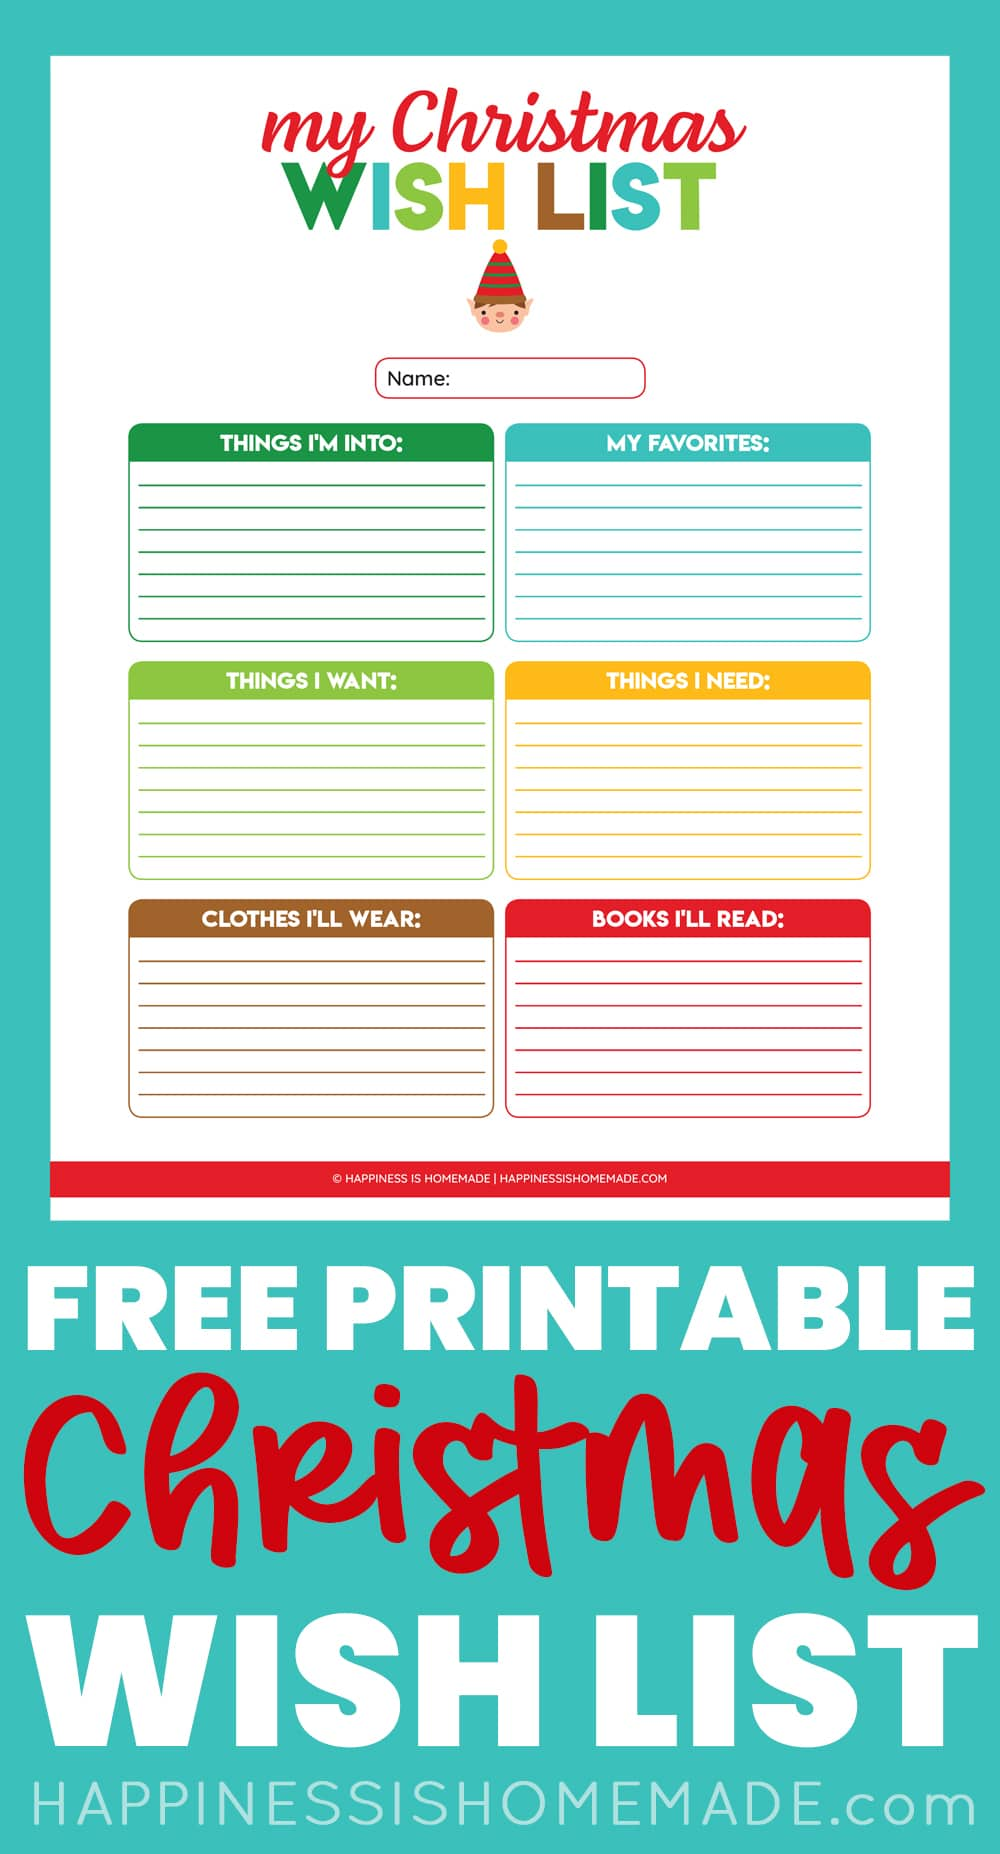 colorful Christmas list make a wish page Christmas wish list make a Christmas list grown up Christmas list instant download Printable